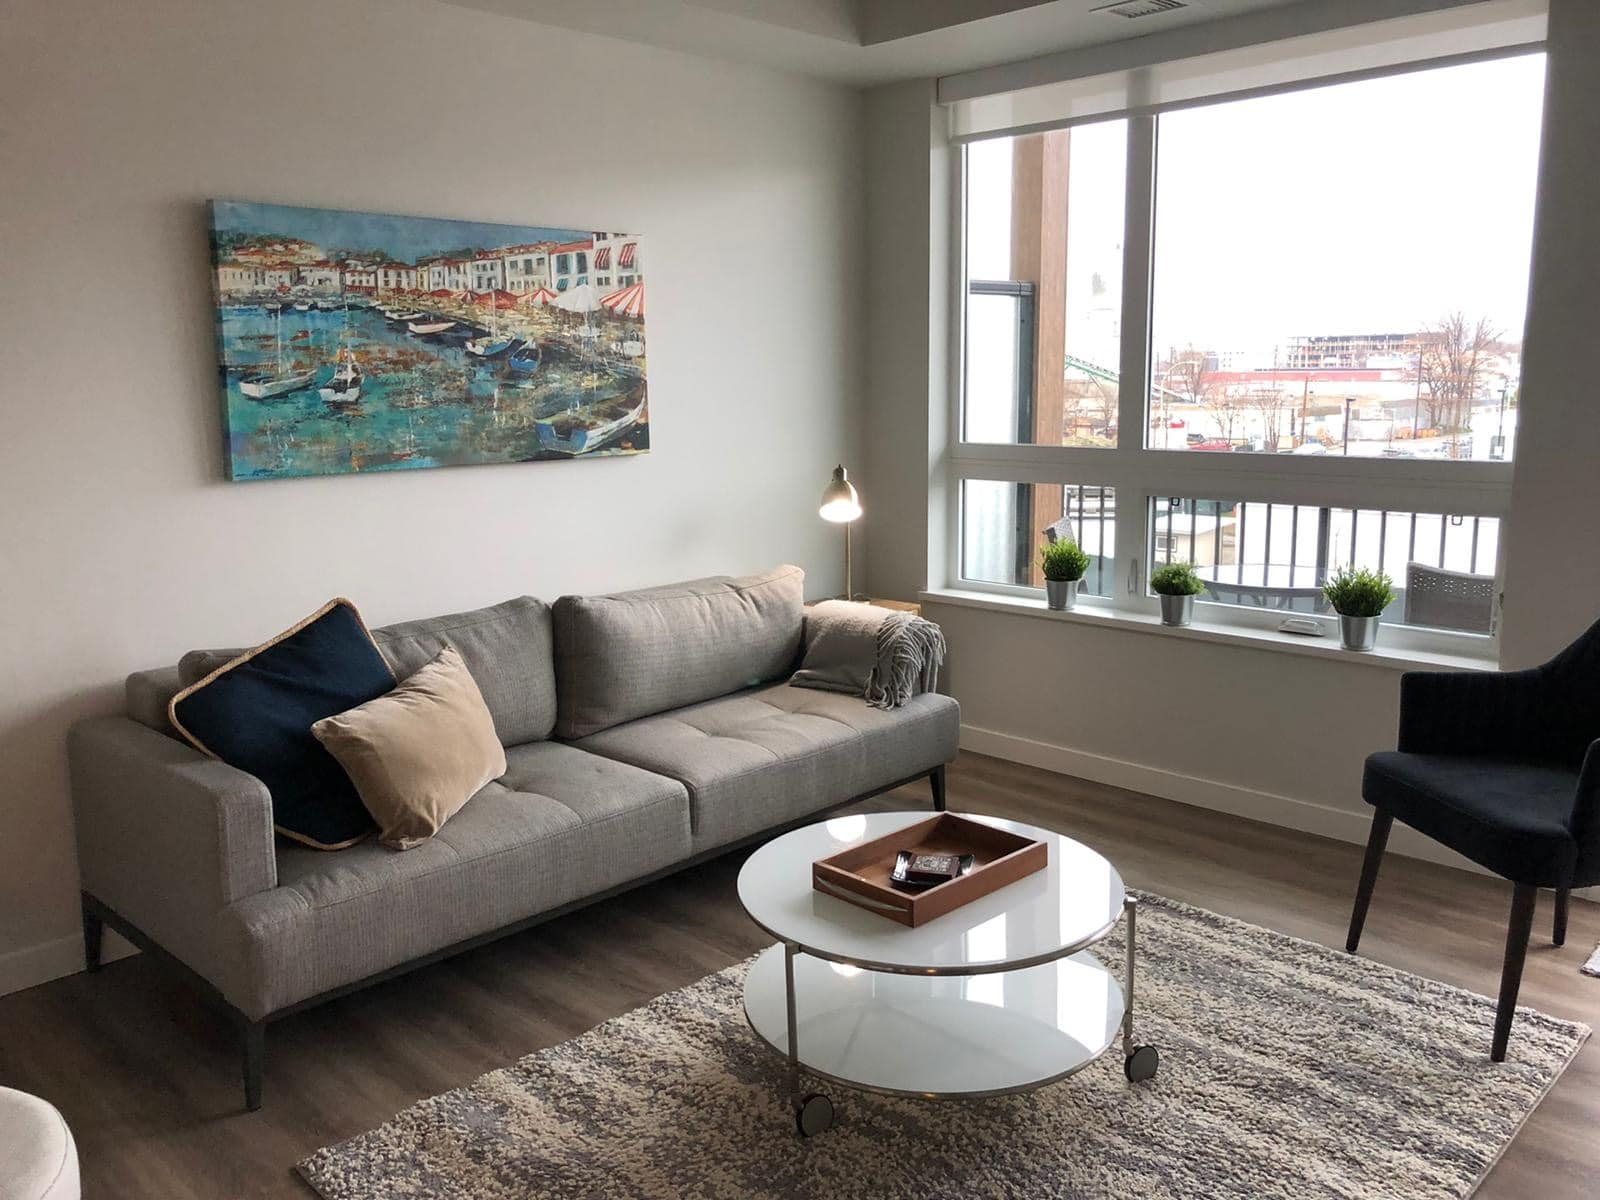 kelowna airbnb management services